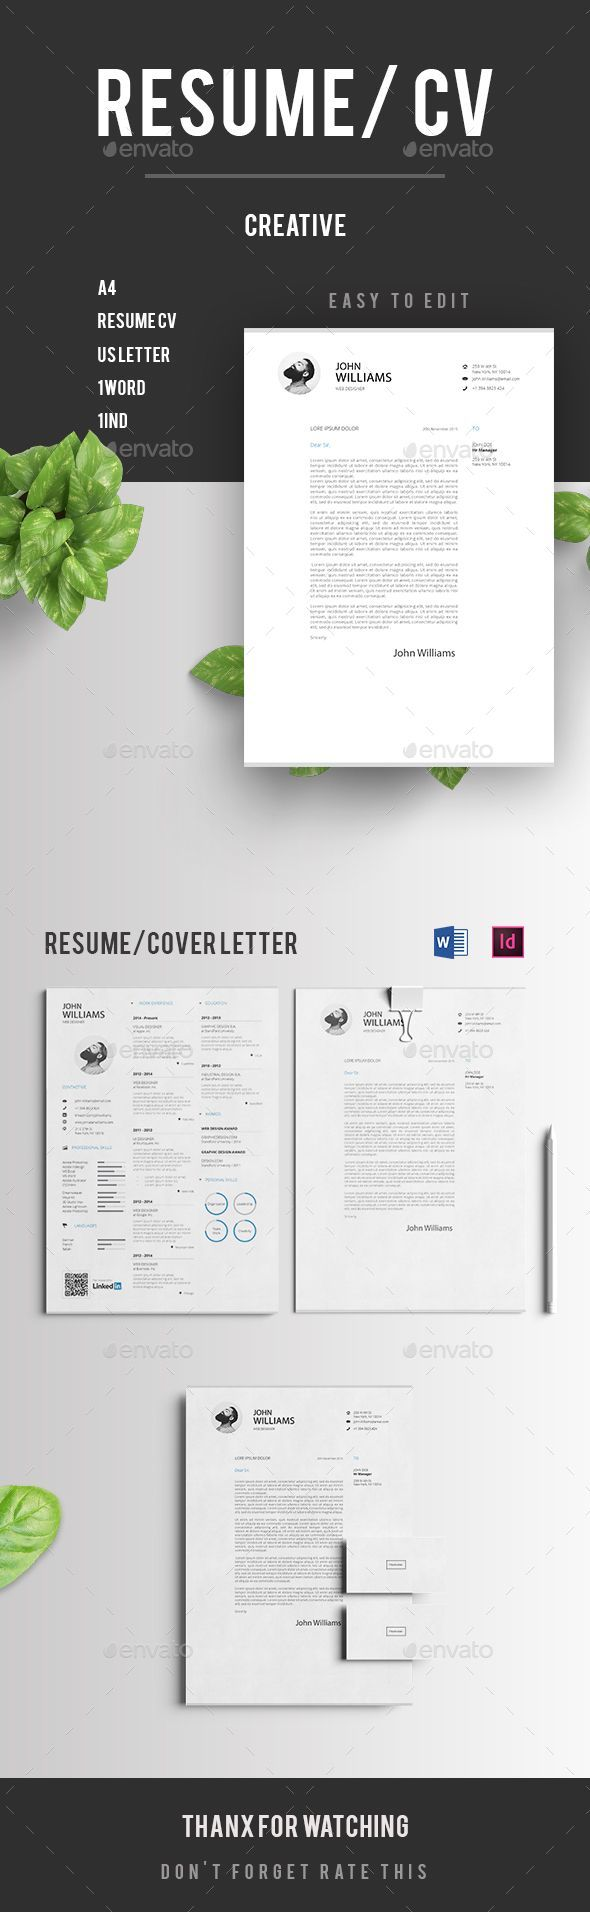 medical billing resumes%0A  Resume CV   Resumes Stationery Download here  https   graphicriver